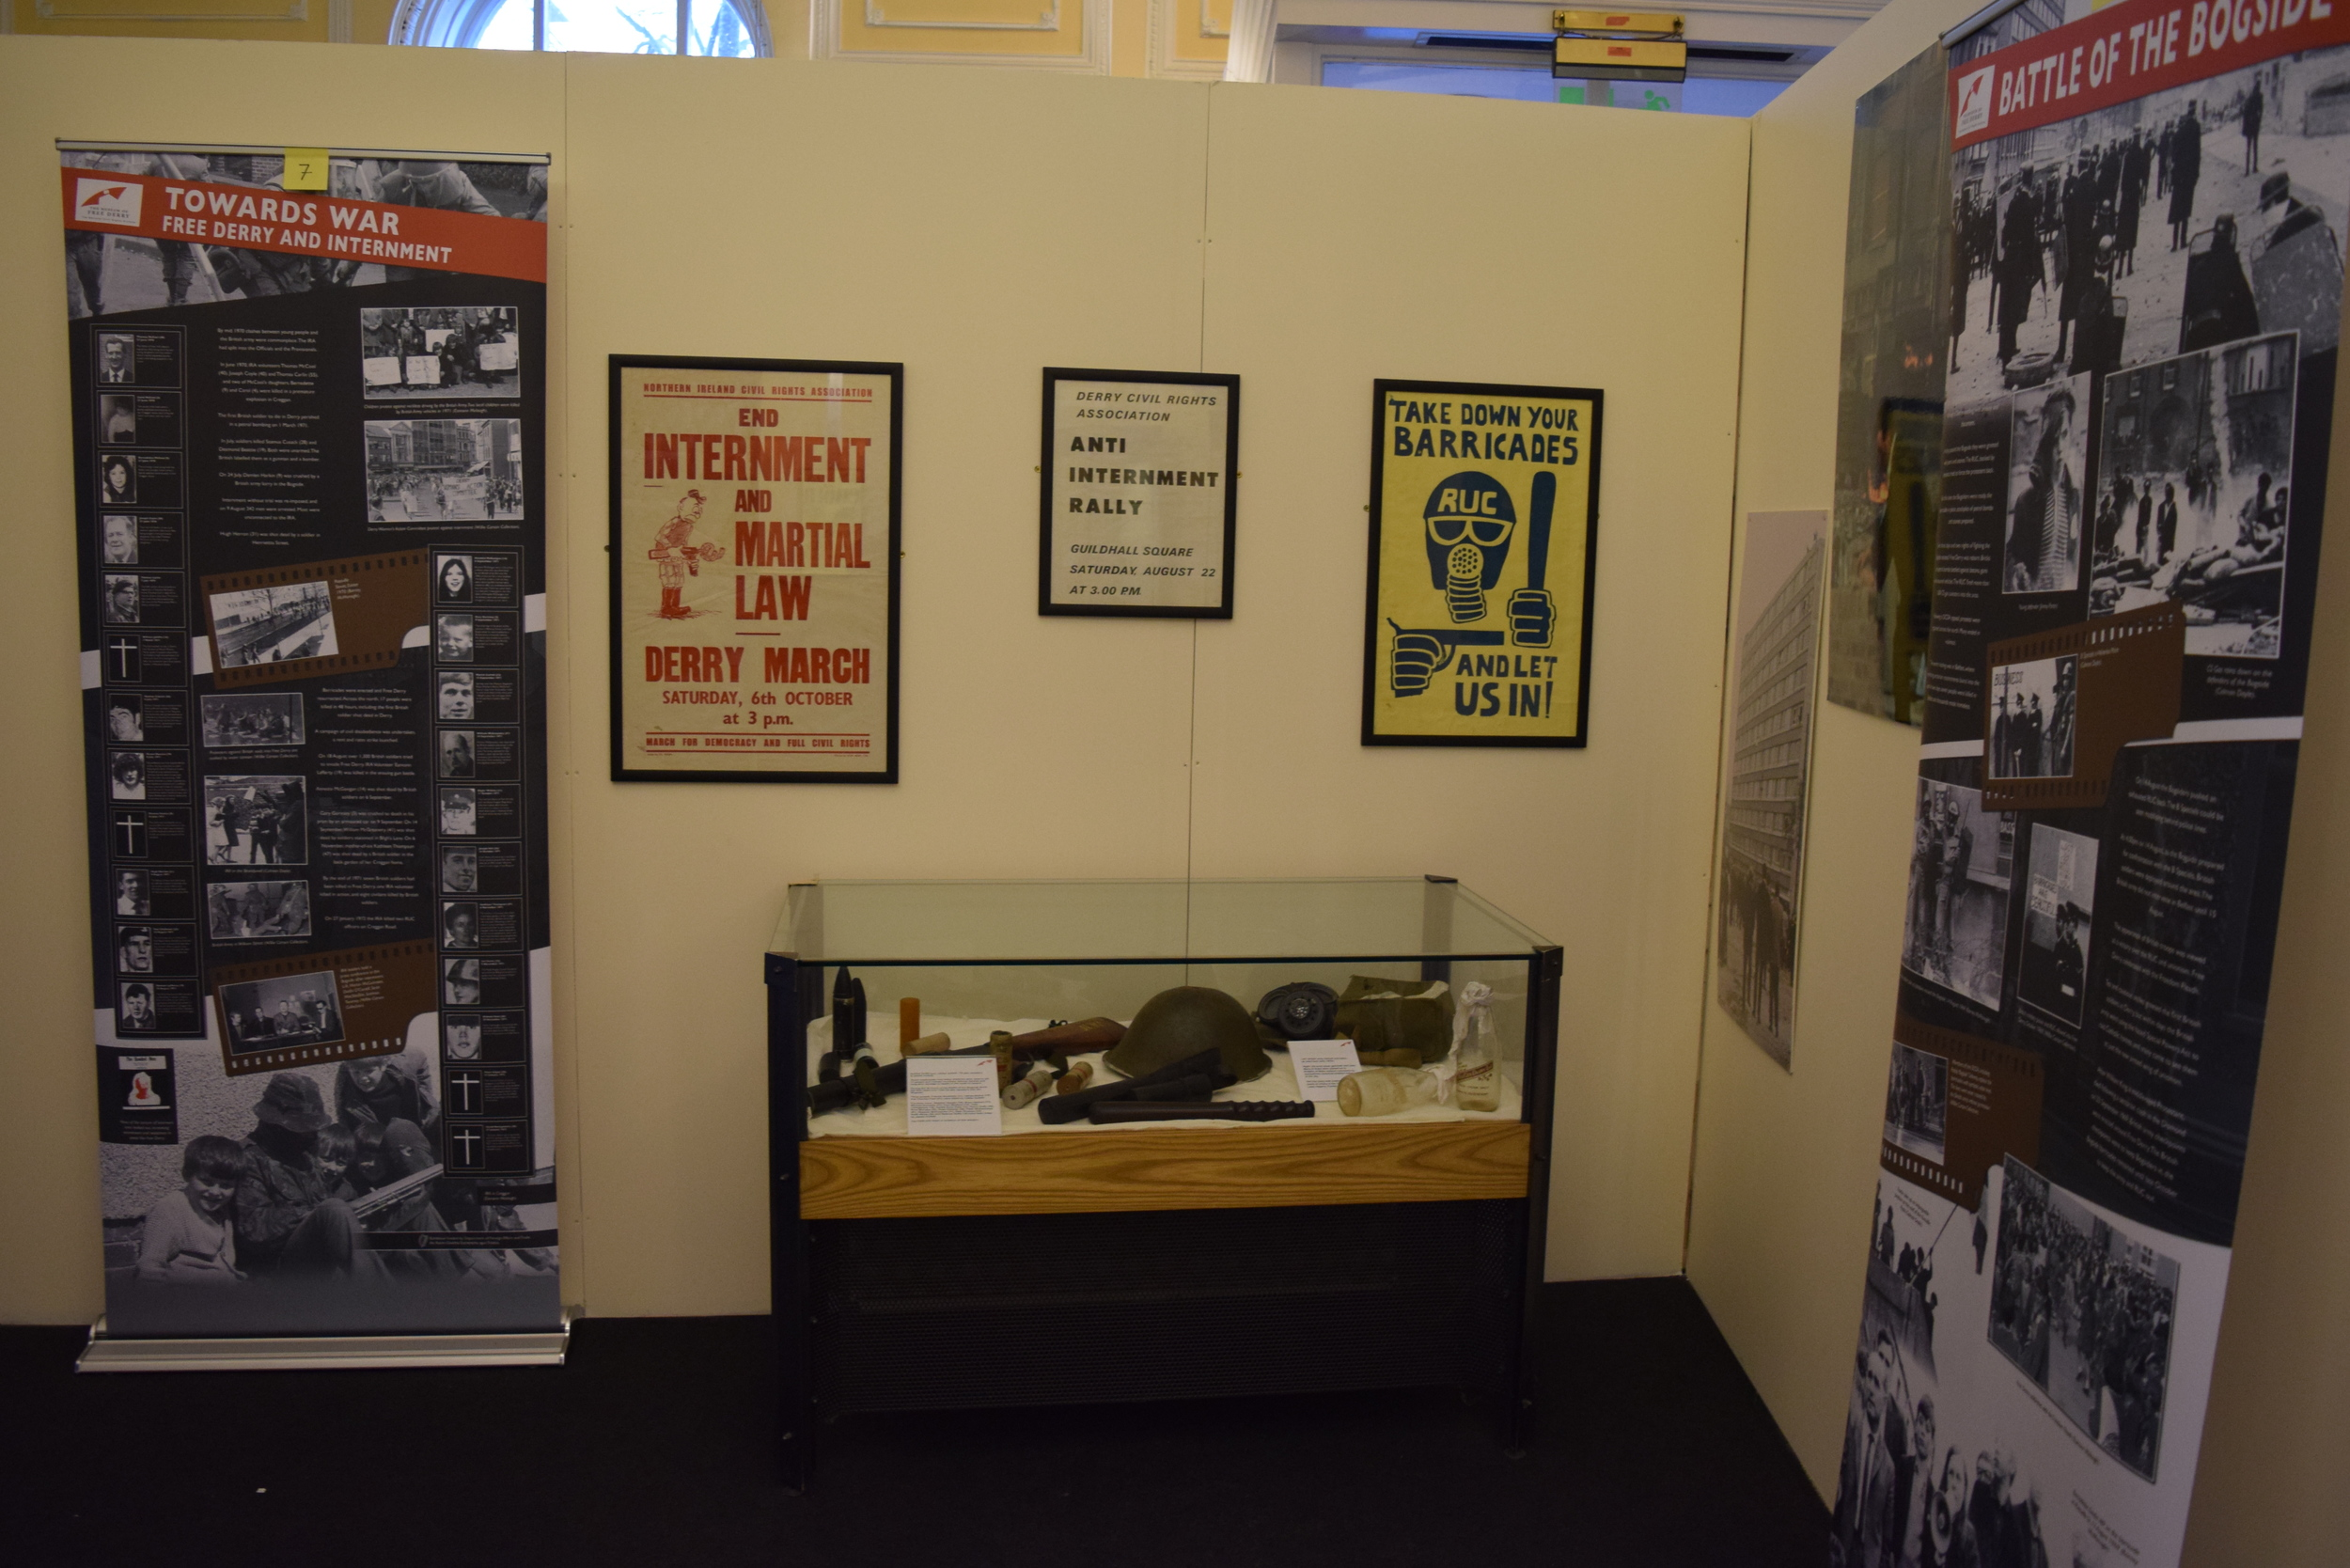 Displays in the Museum of Free Derry